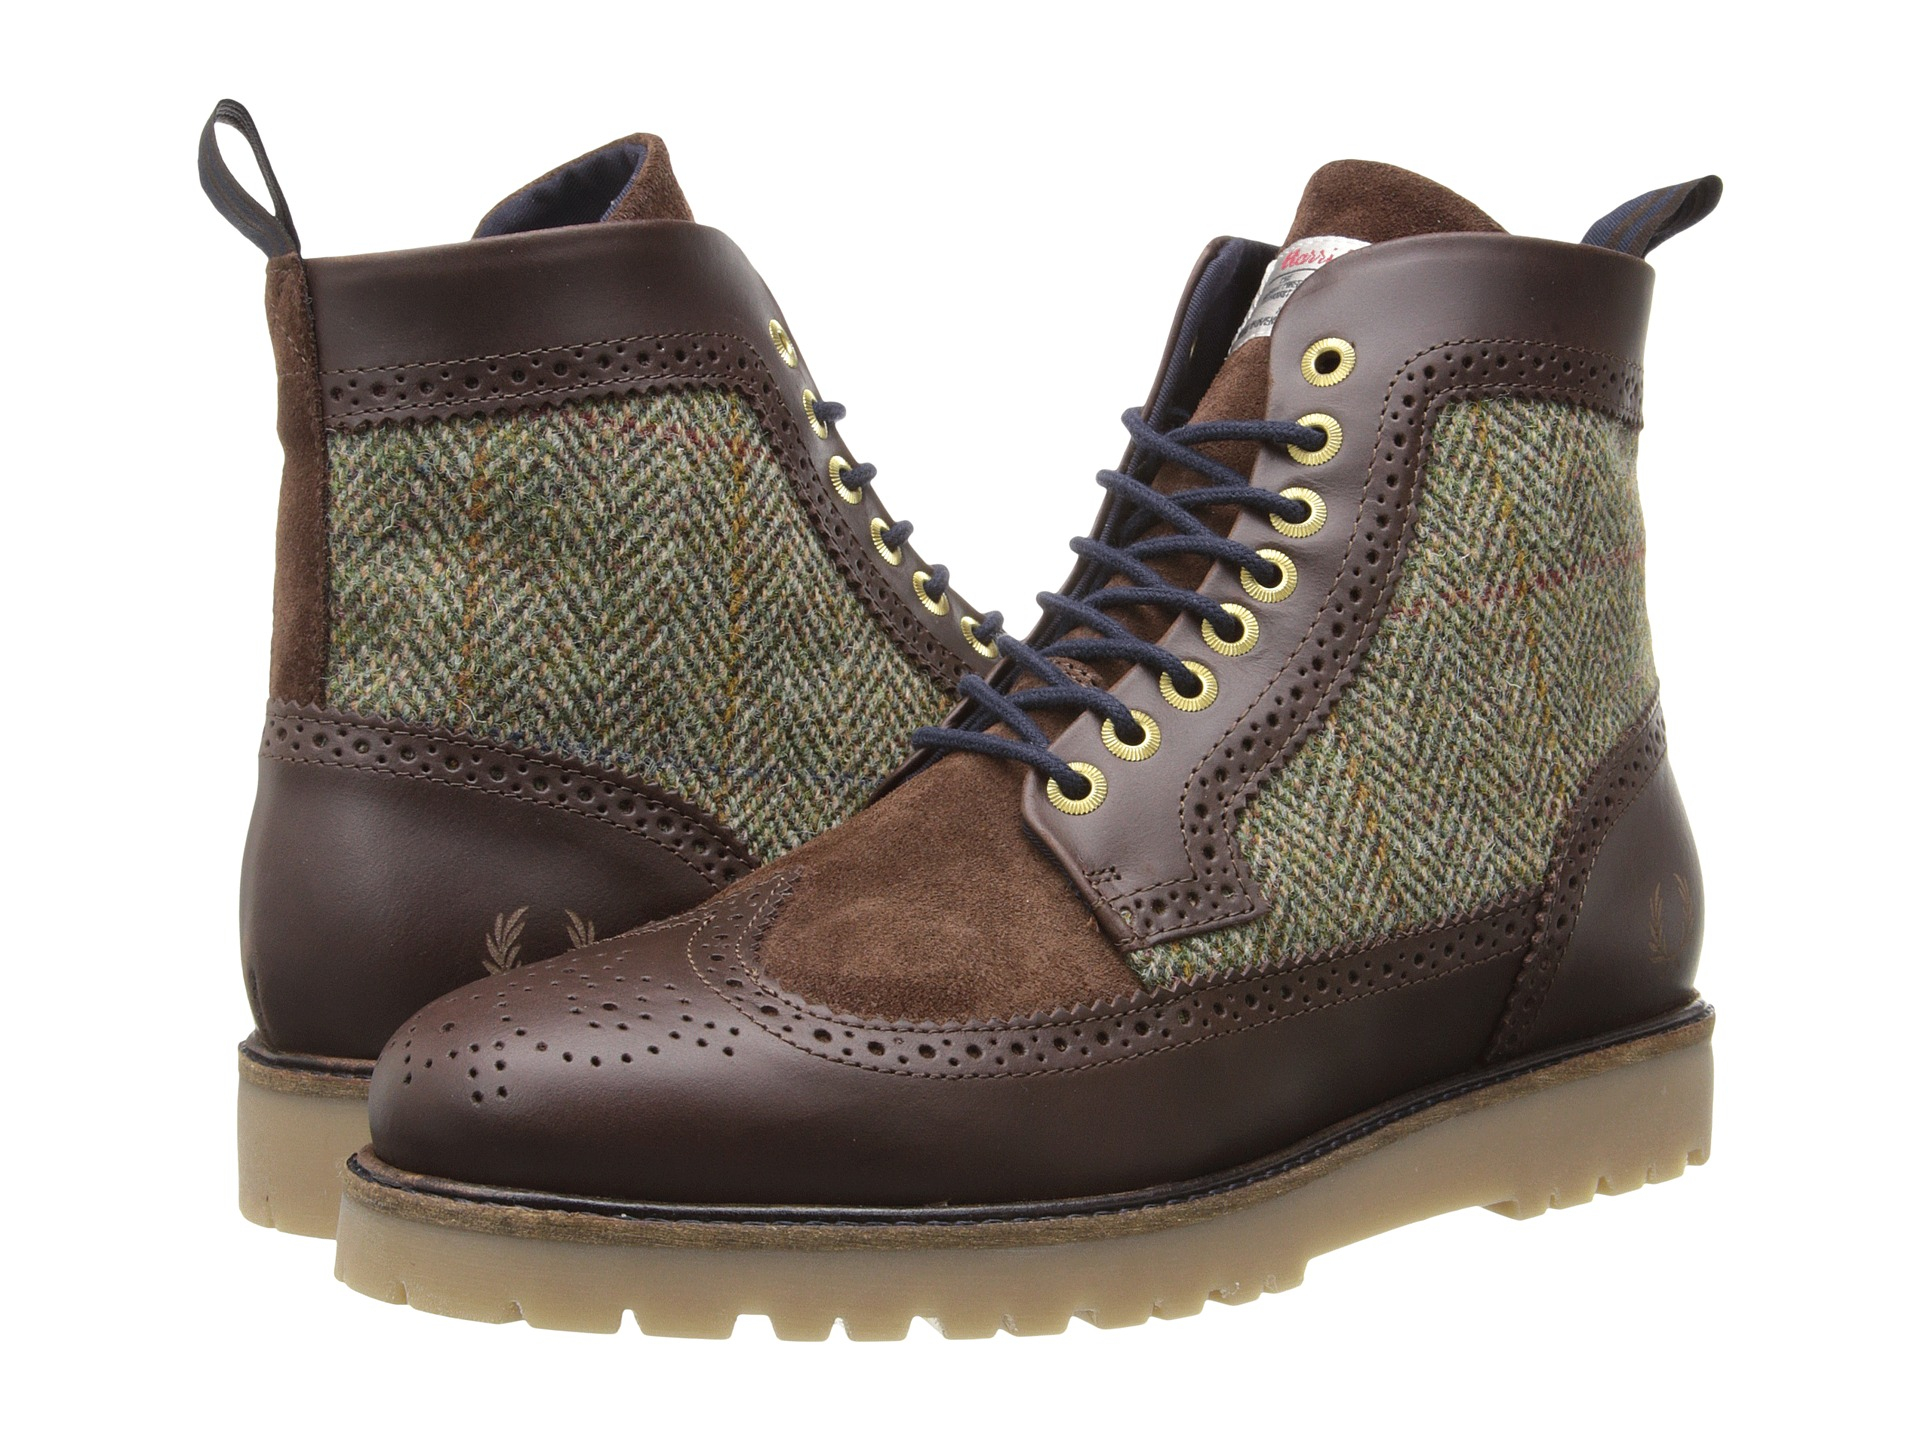 Lyst - Fred Perry Northgate Boot Harris Tweed/leather in ...